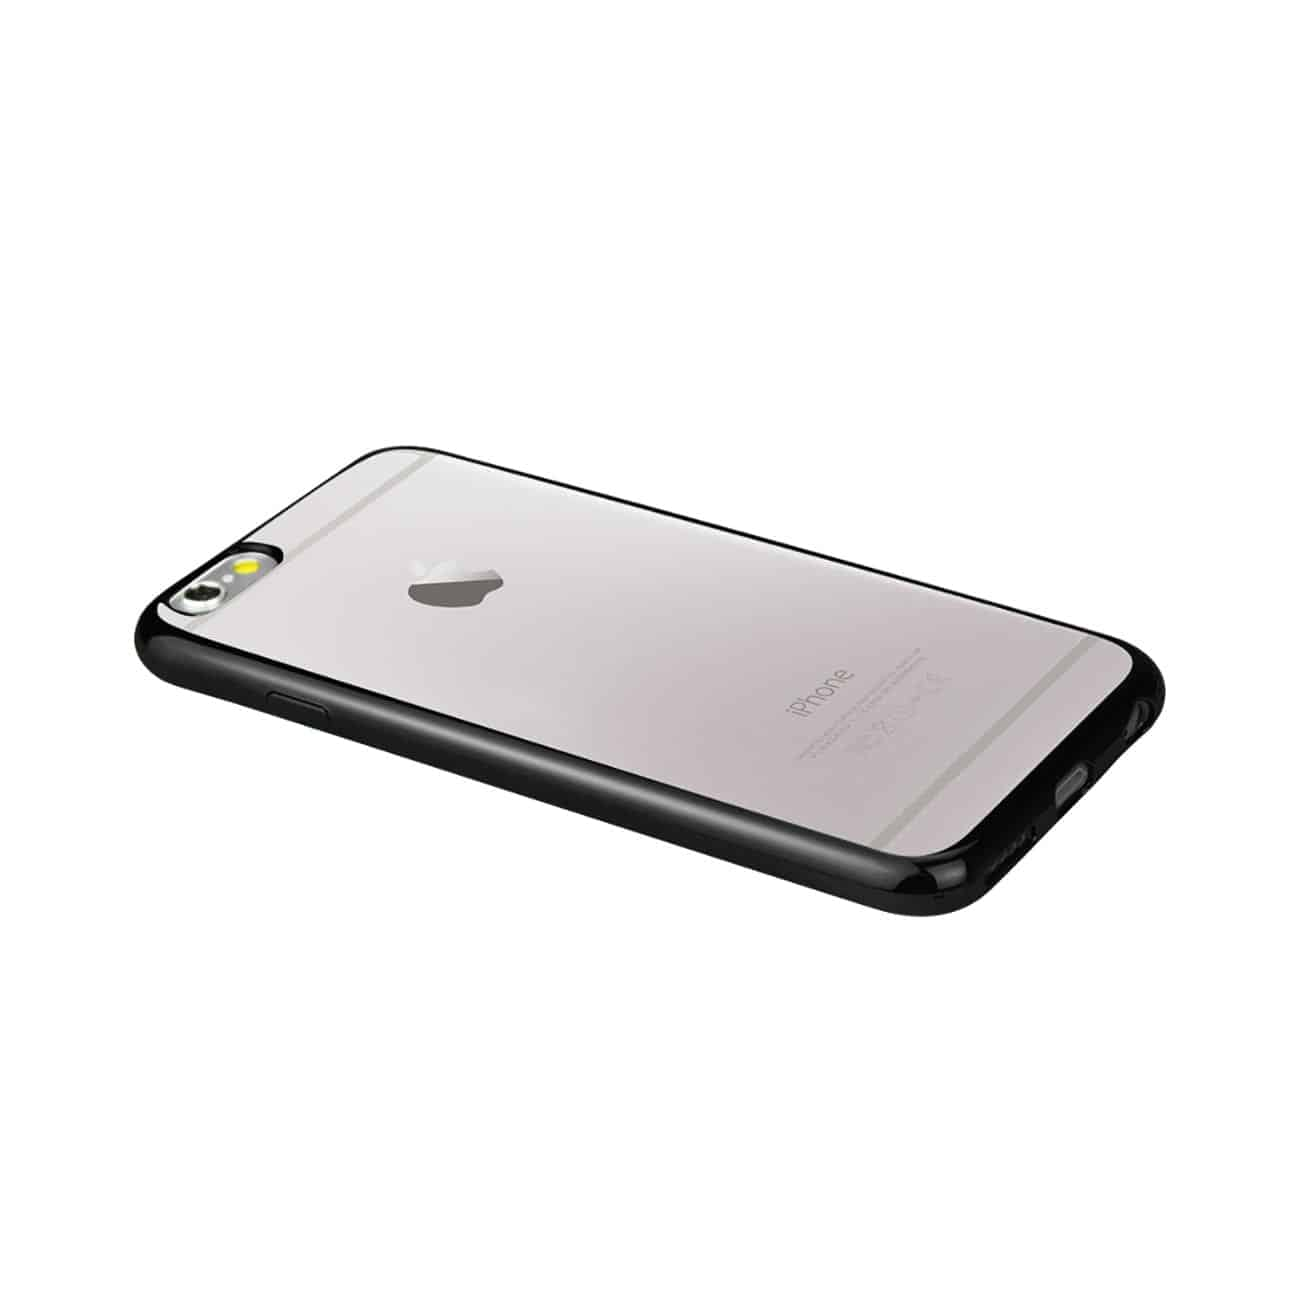 IPHONE 6 PLUS FRAME CASE WITH CLEAR BACK IN BLACK